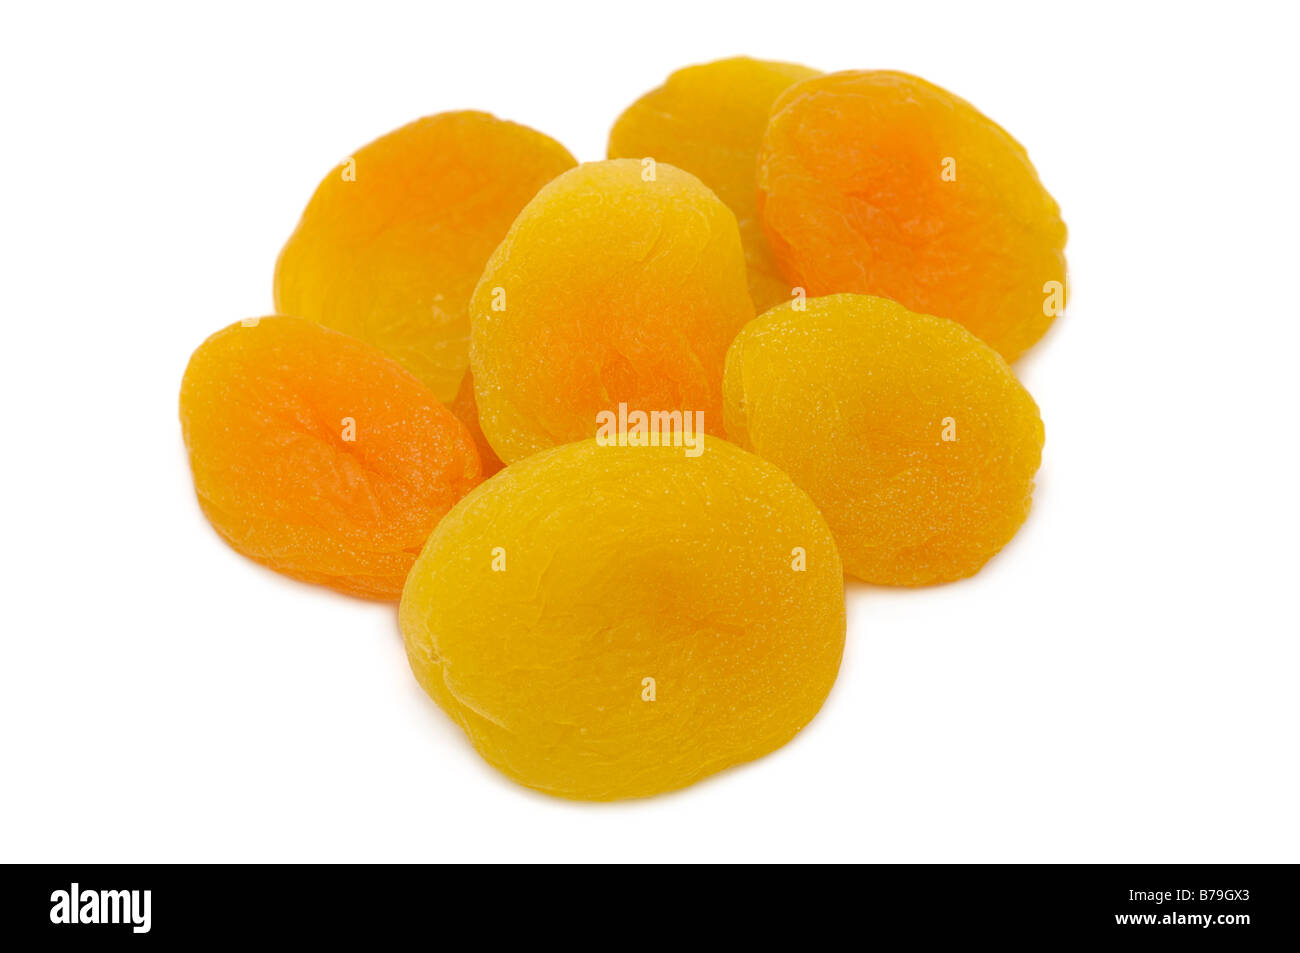 Dried Apricots - Stock Image